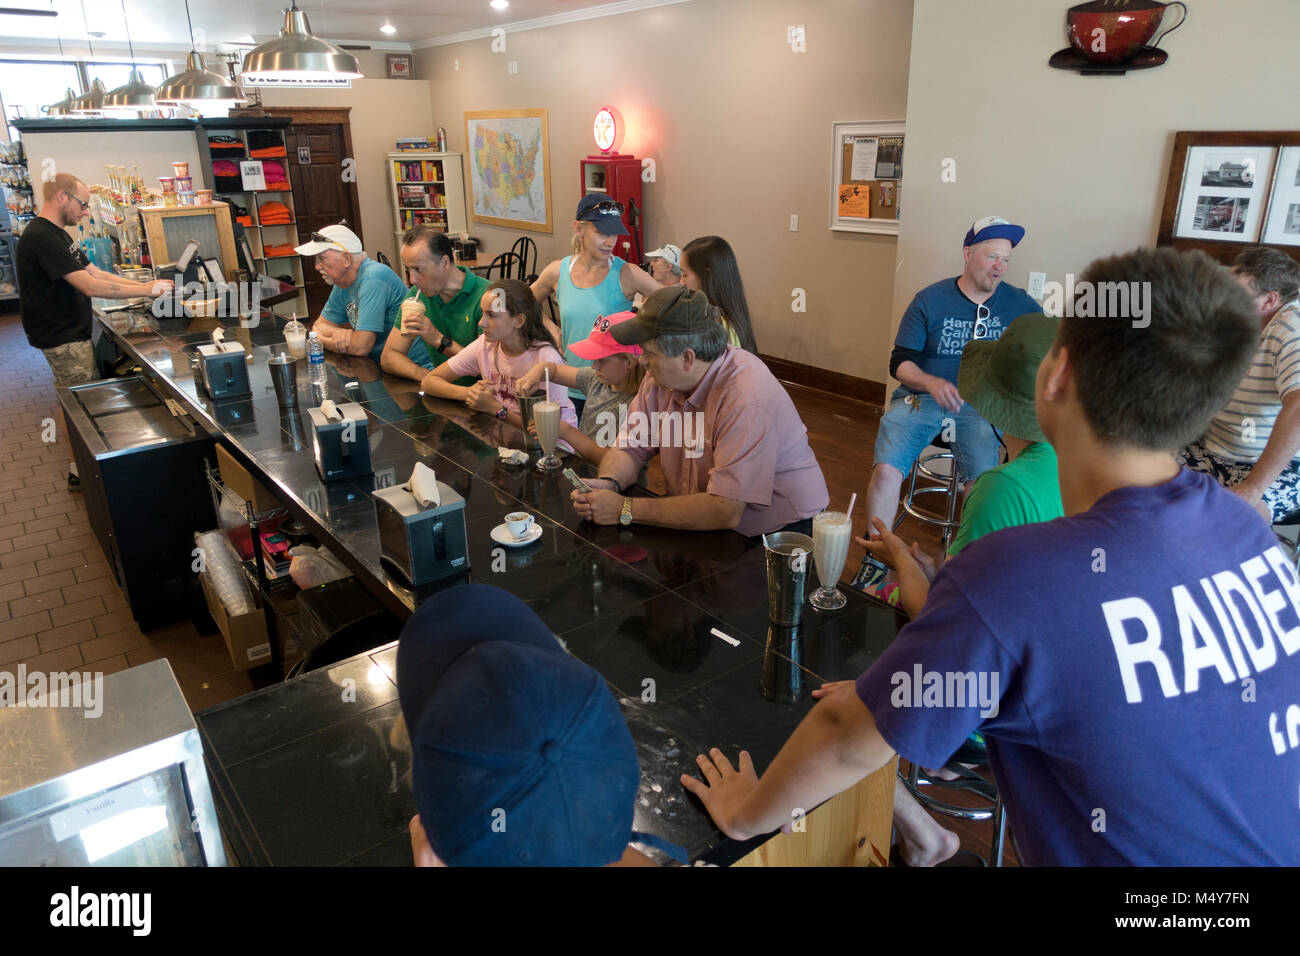 A view of people drinking malts and enjoying themselves at the Justice Two Coffeehouse & Eatery. Clitherall - Stock Image